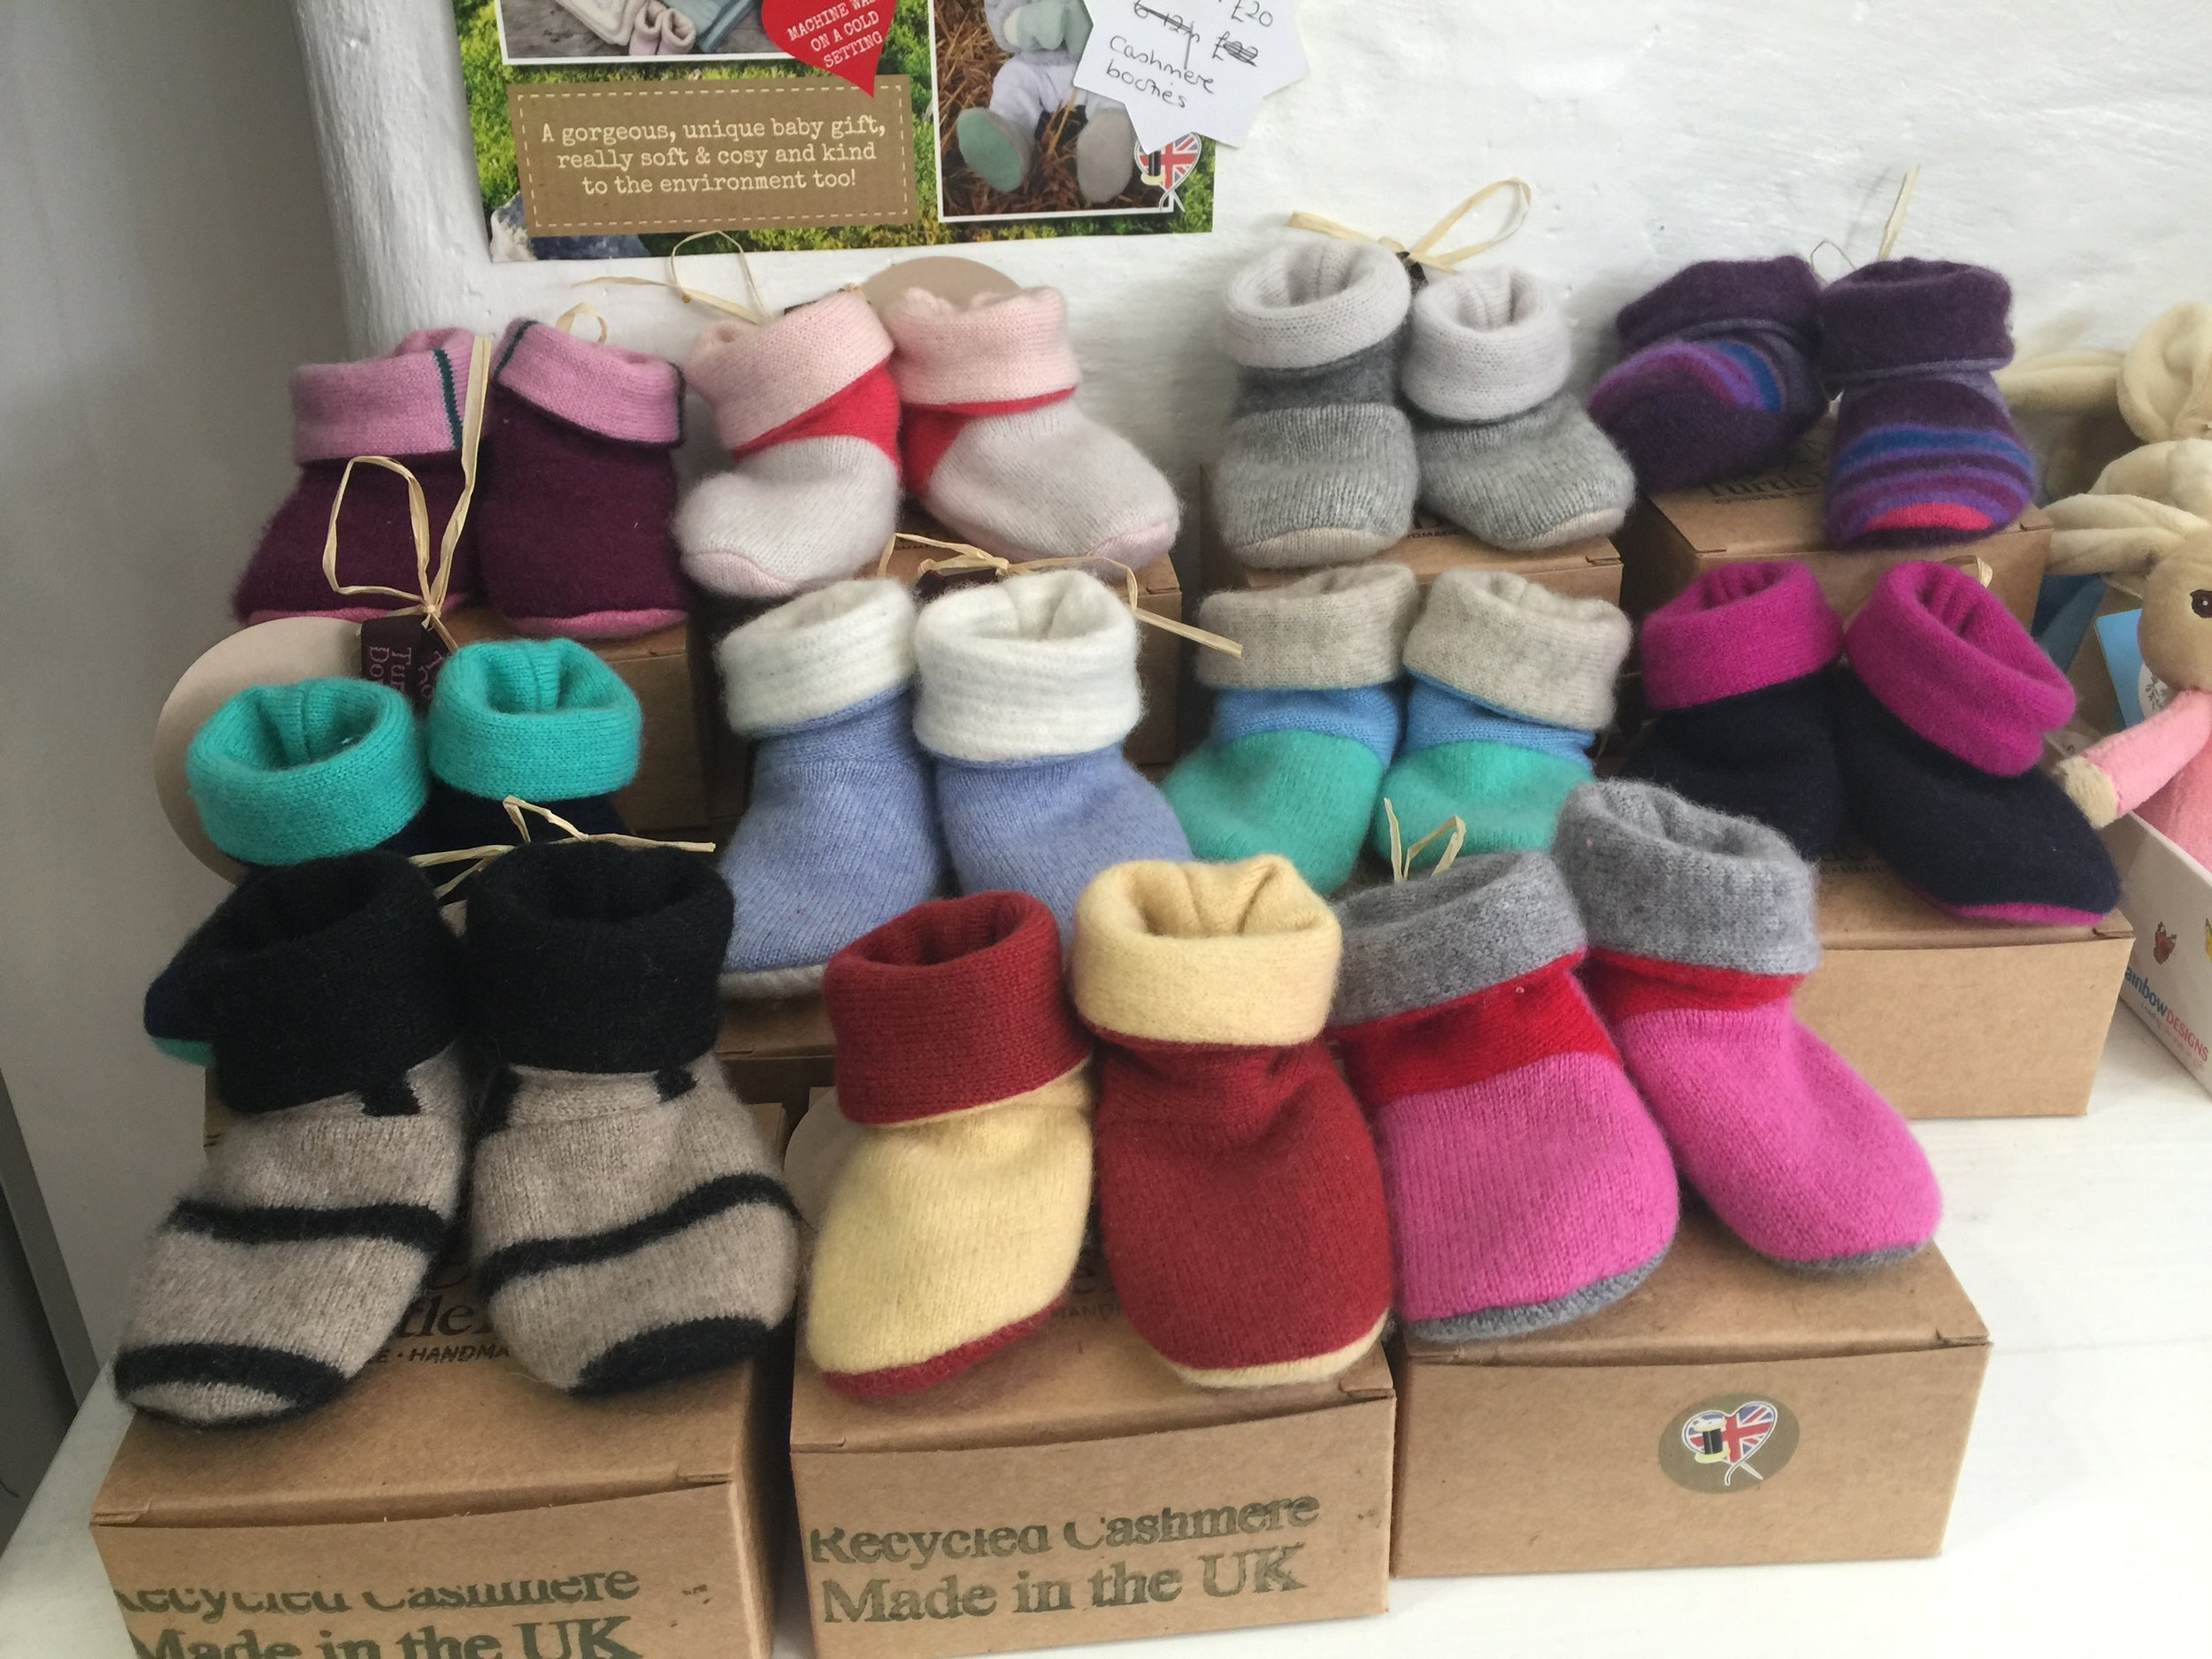 Smarti - Gifts for the newborn baby: try Turtle Doves gorgeous booties made from recycled cashmeresale £20